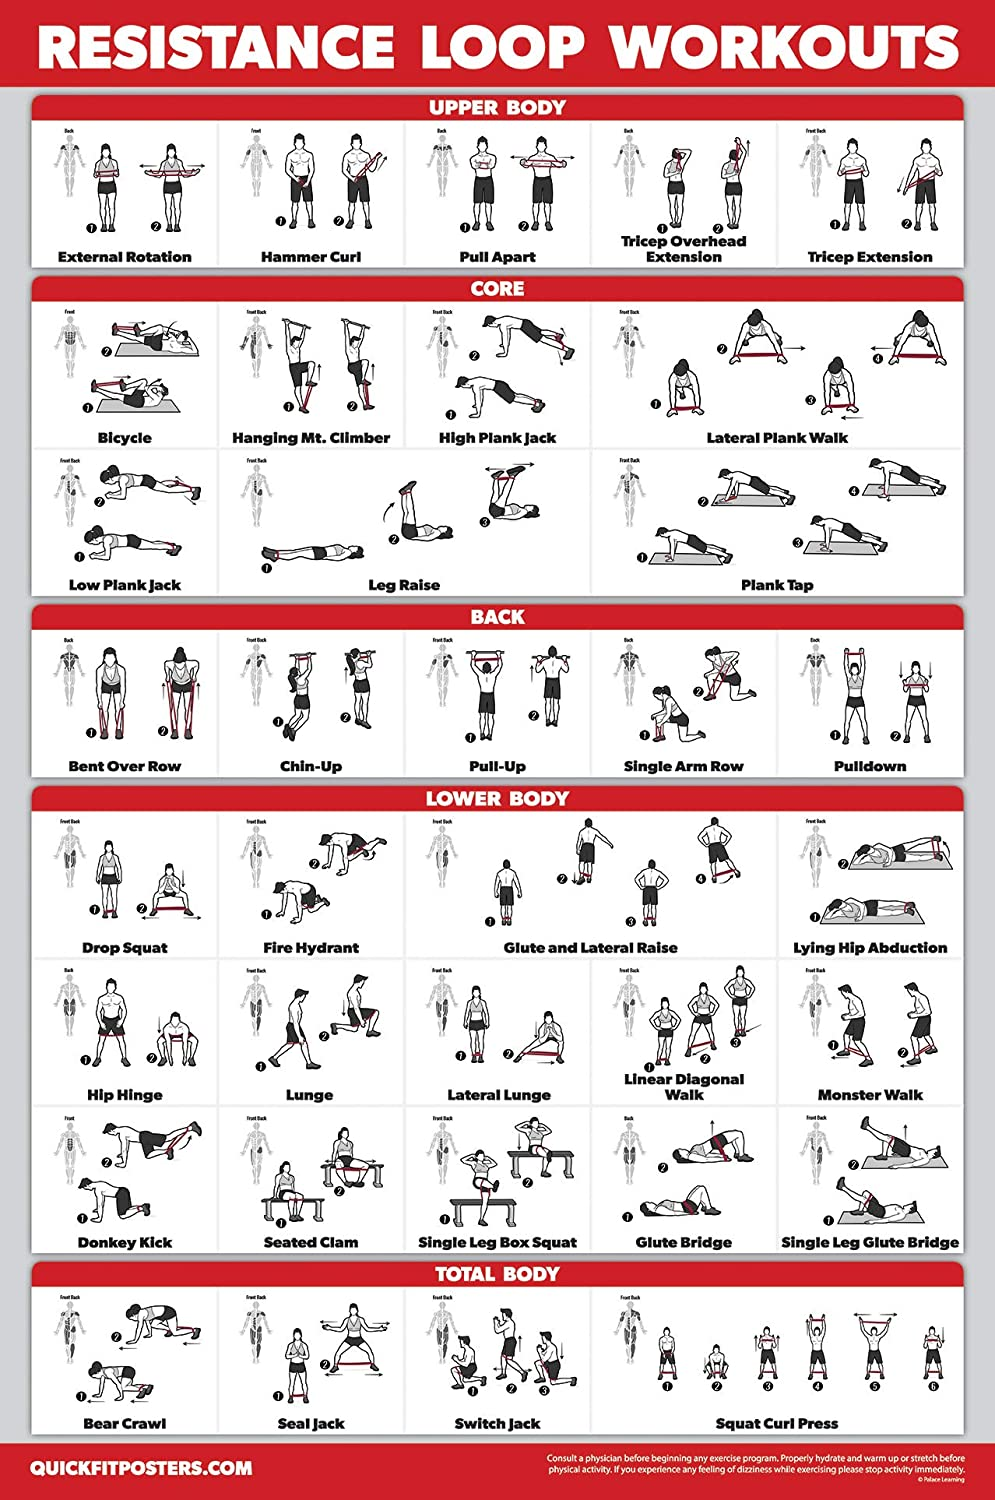 18 x 27 QuickFit Resistance Loop Bands Workout Poster Laminated Exercise Chart for Resistance Band Loops